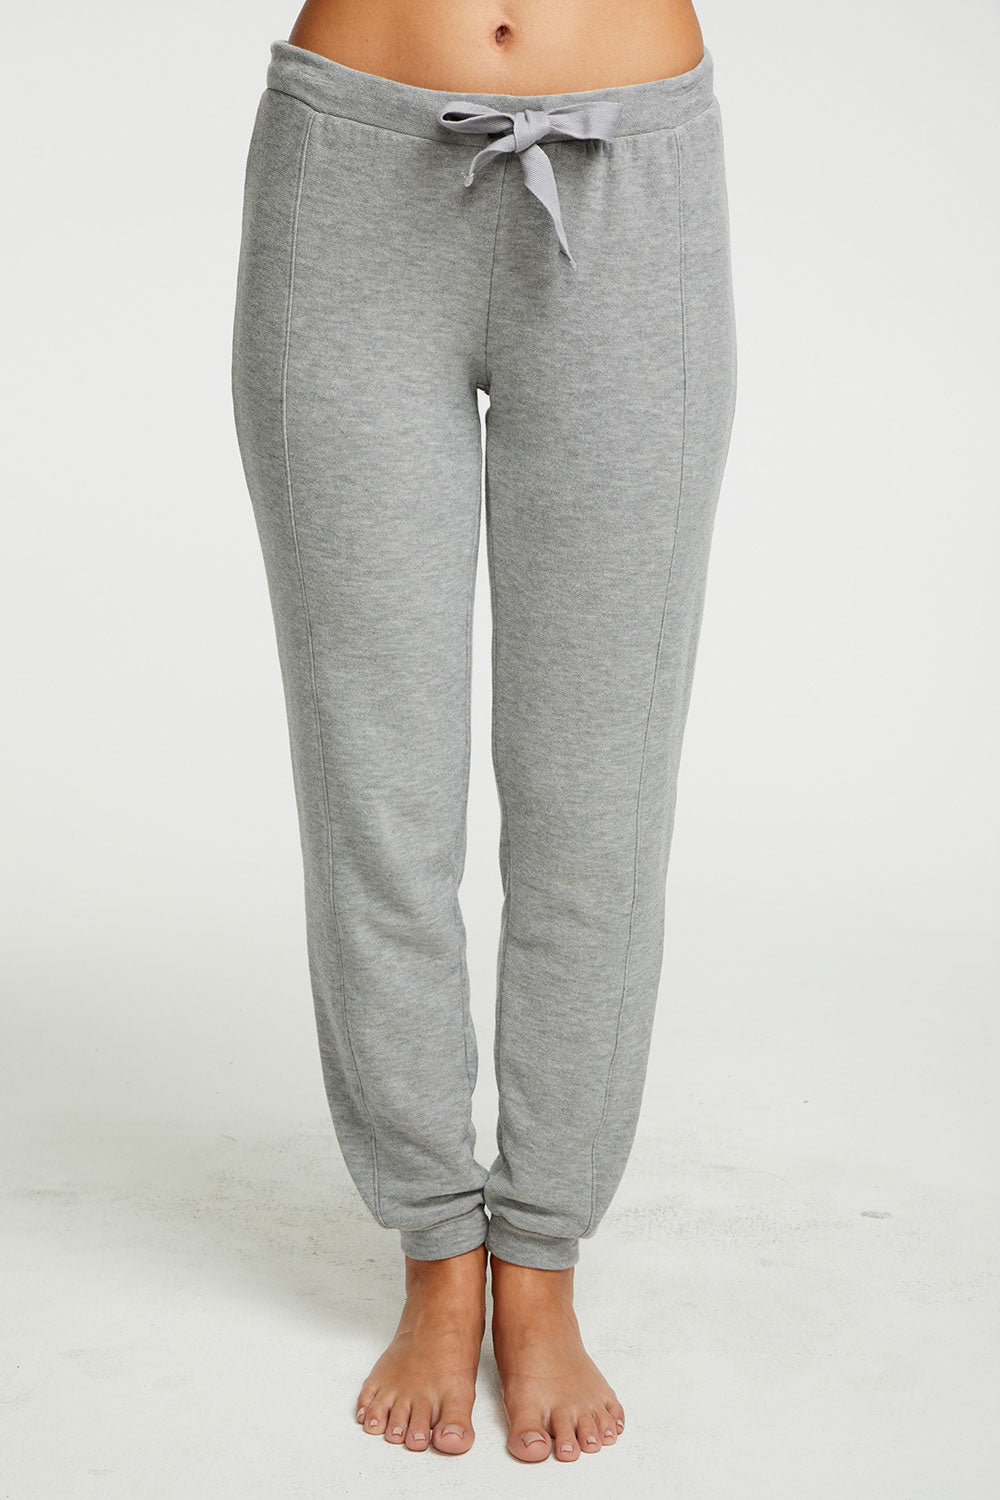 Cozy Knit Seamed Slouchy Jogger, WOMENS, chaserbrand.com,chaser clothing,chaser apparel,chaser los angeles